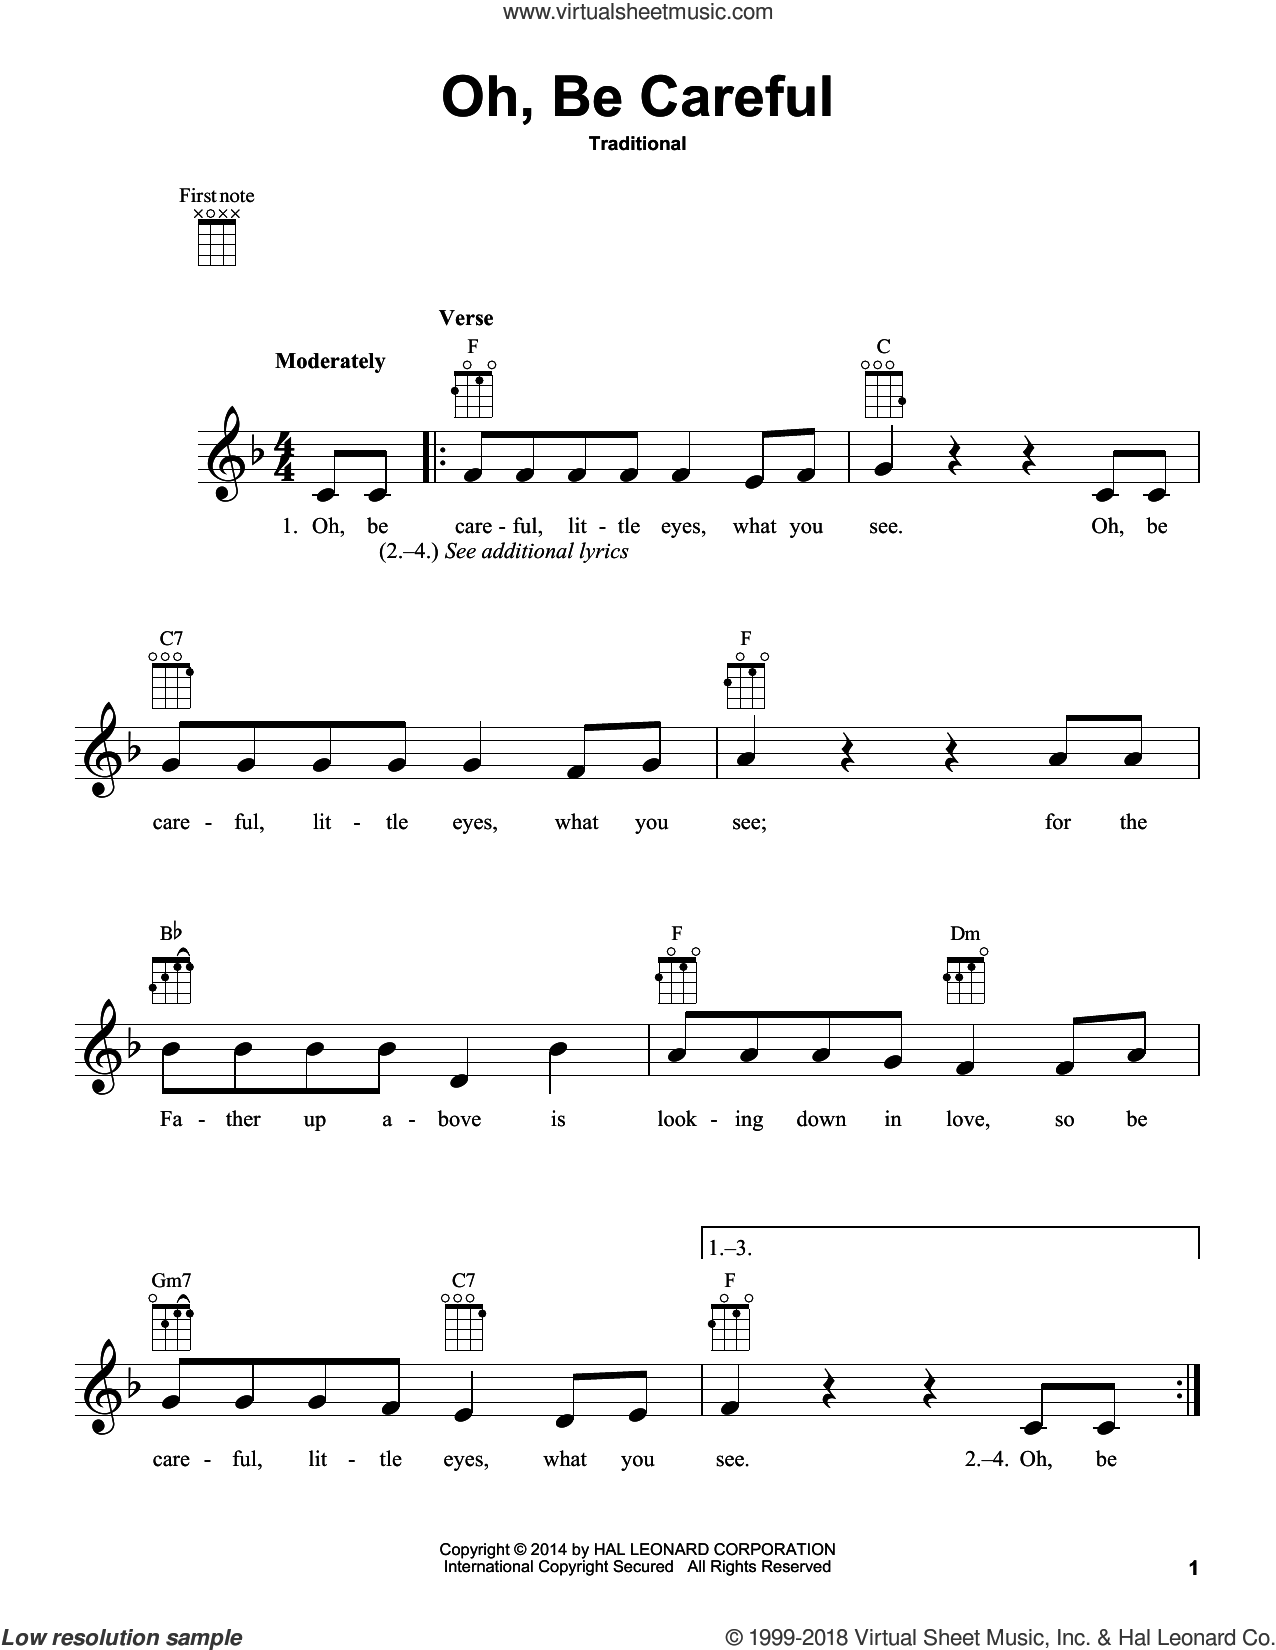 Oh, Be Careful sheet music for ukulele, intermediate